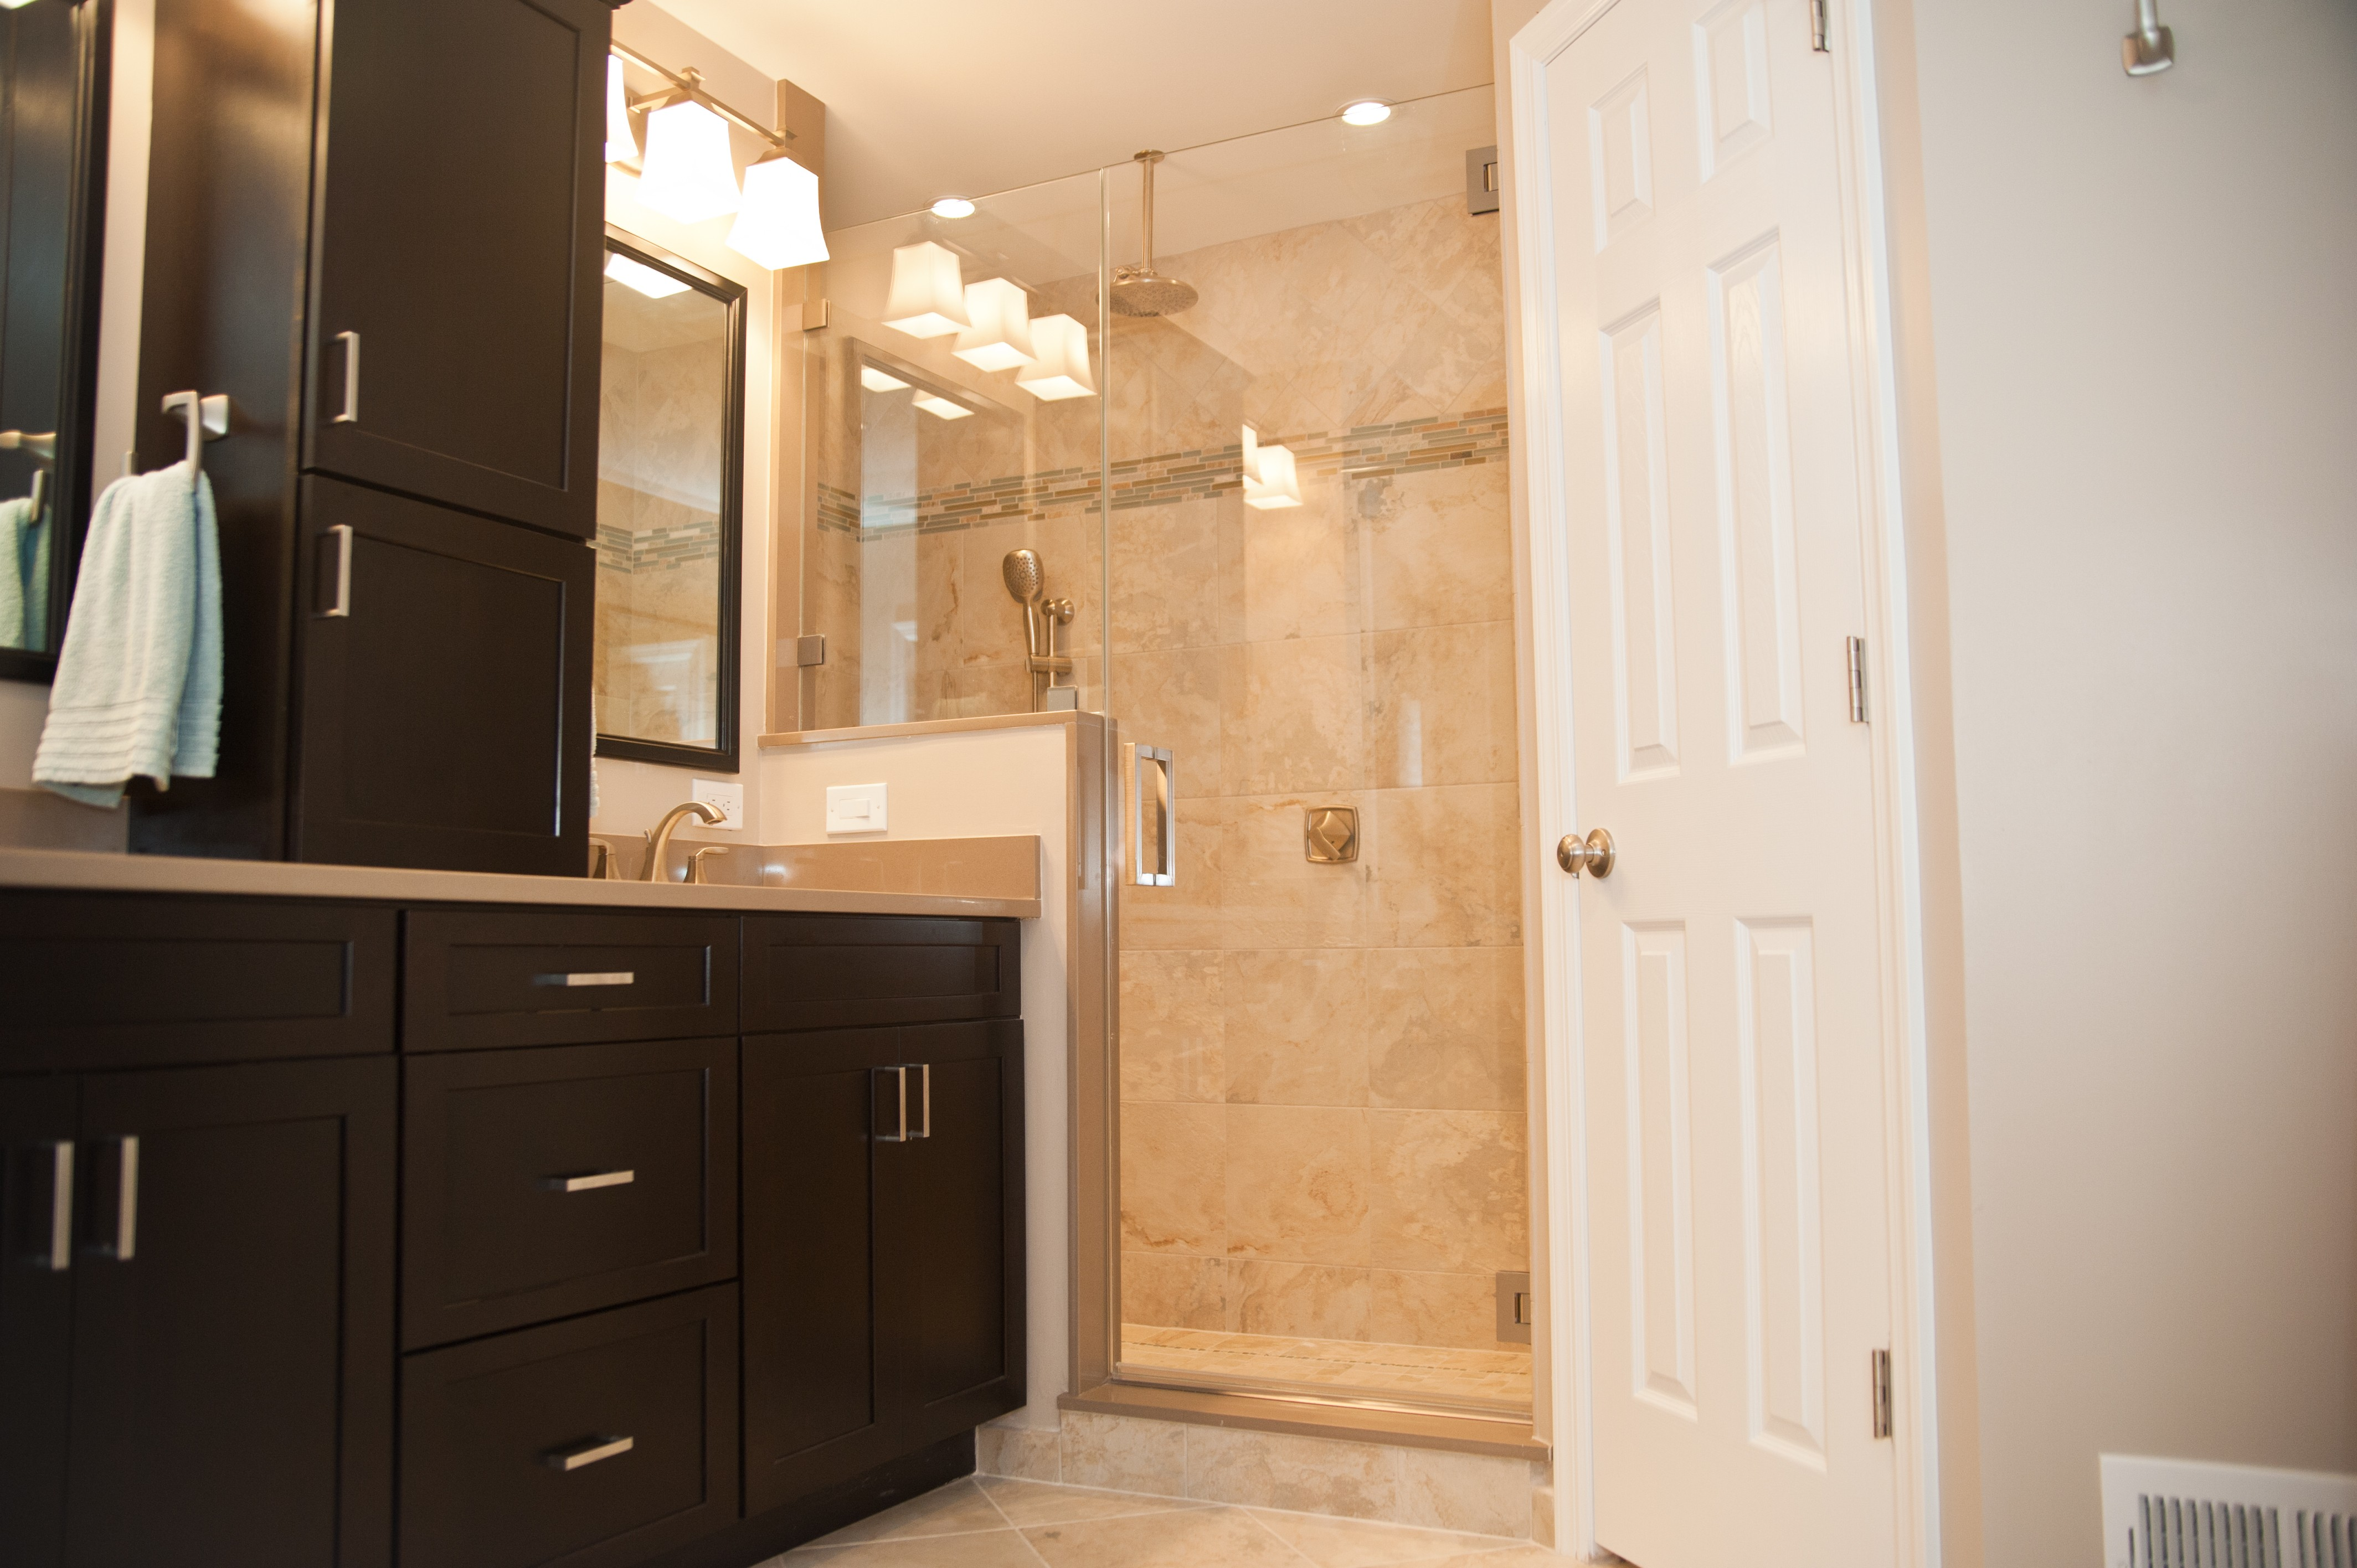 Nj bathroom remodeling tips monmouth ocean county - Bathroom design nj ...